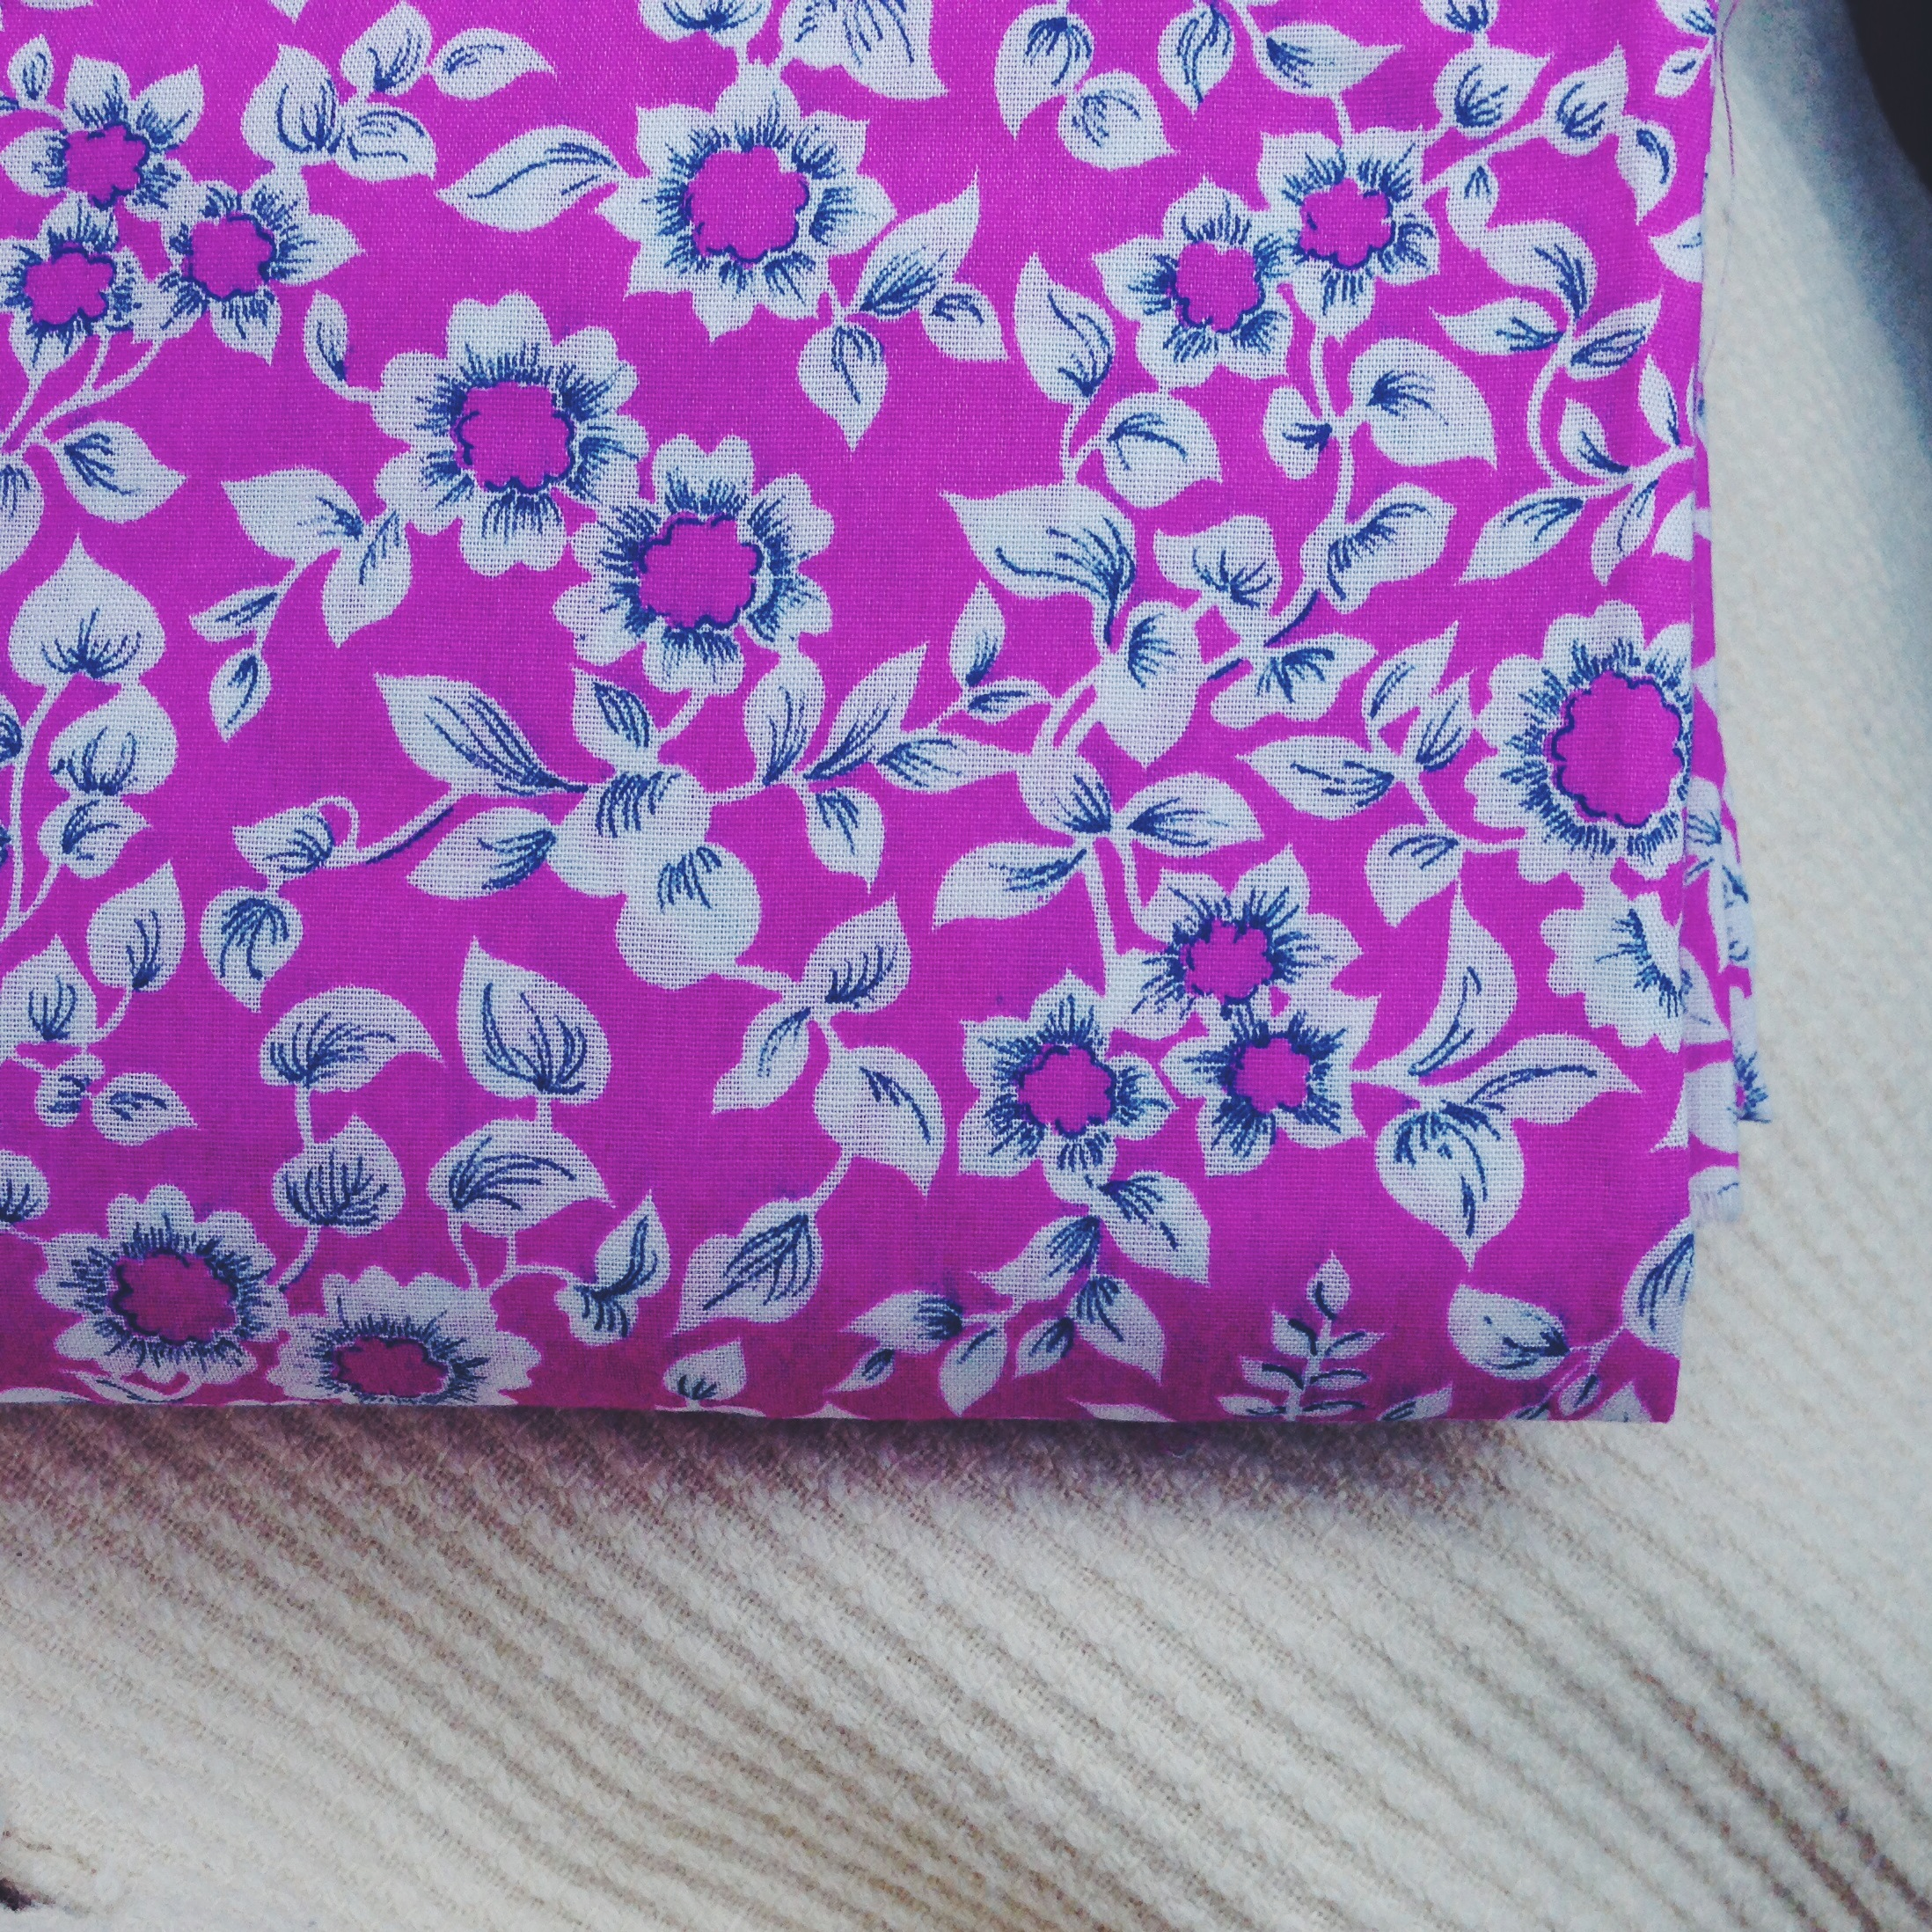 Vintage floral fabric - available  here .